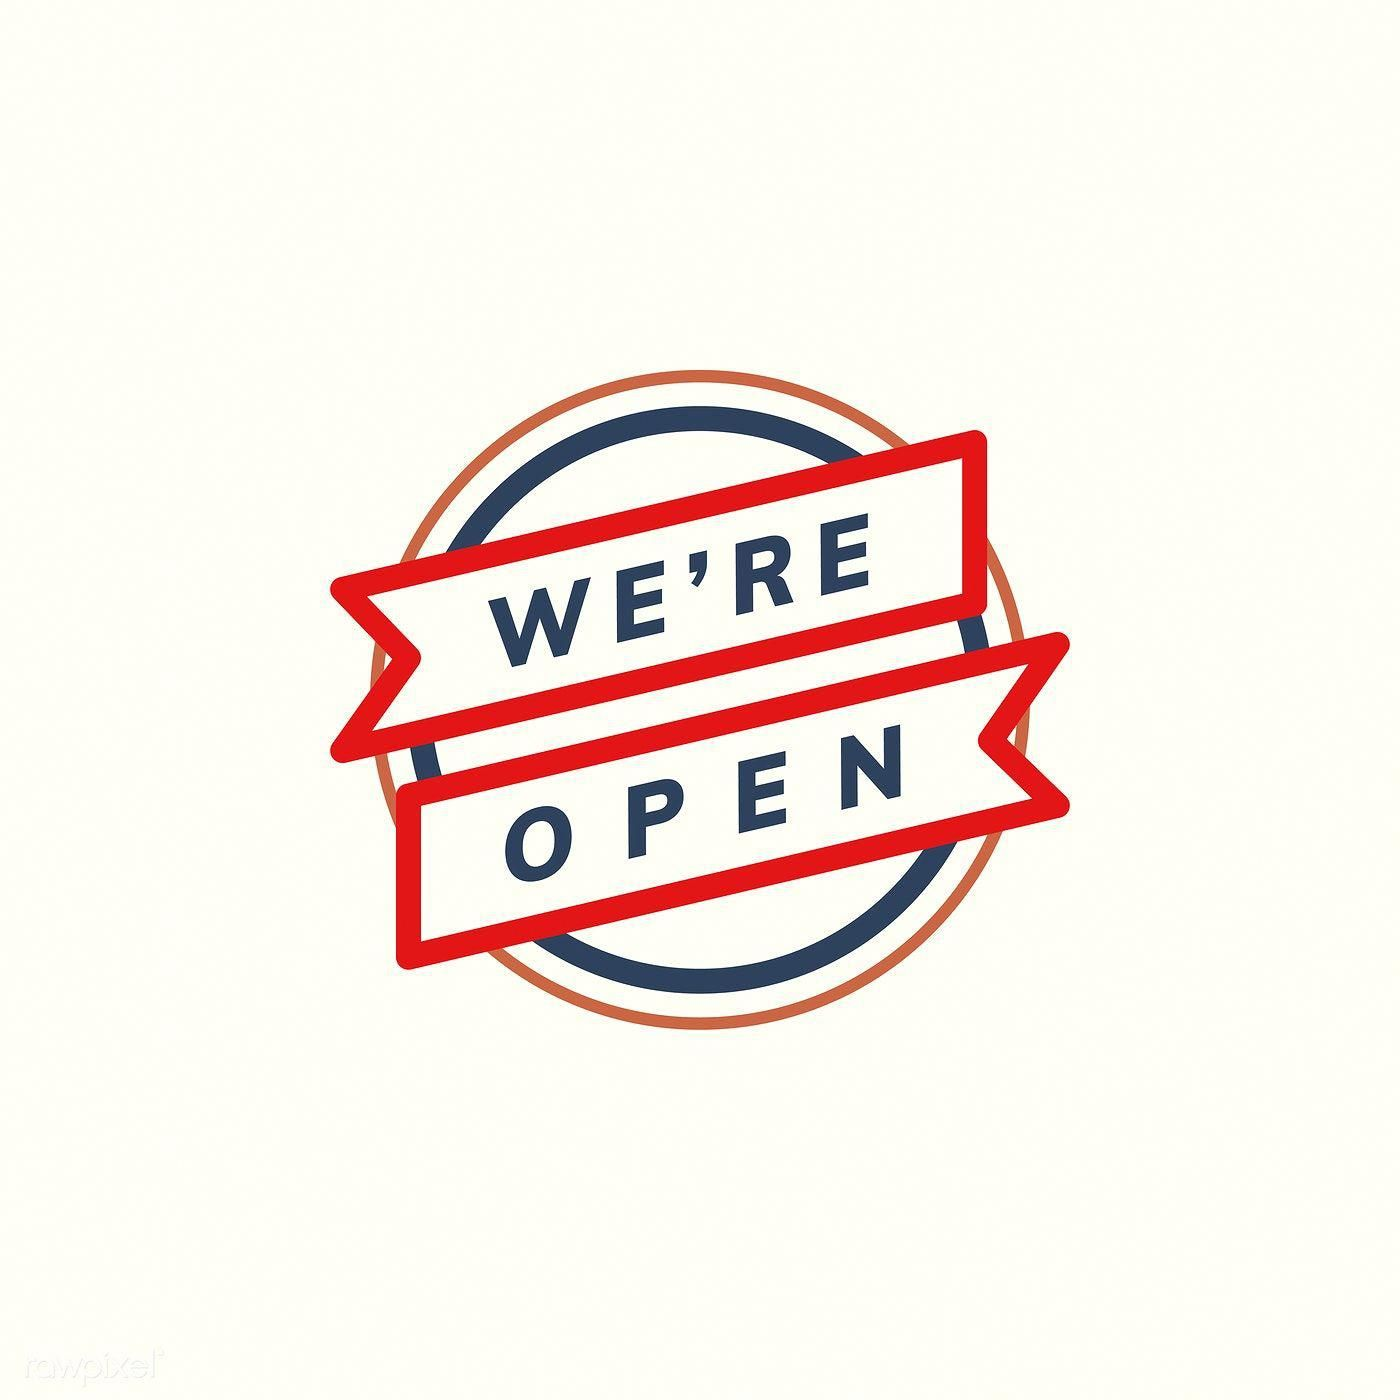 We're open banner sign illustration free image by